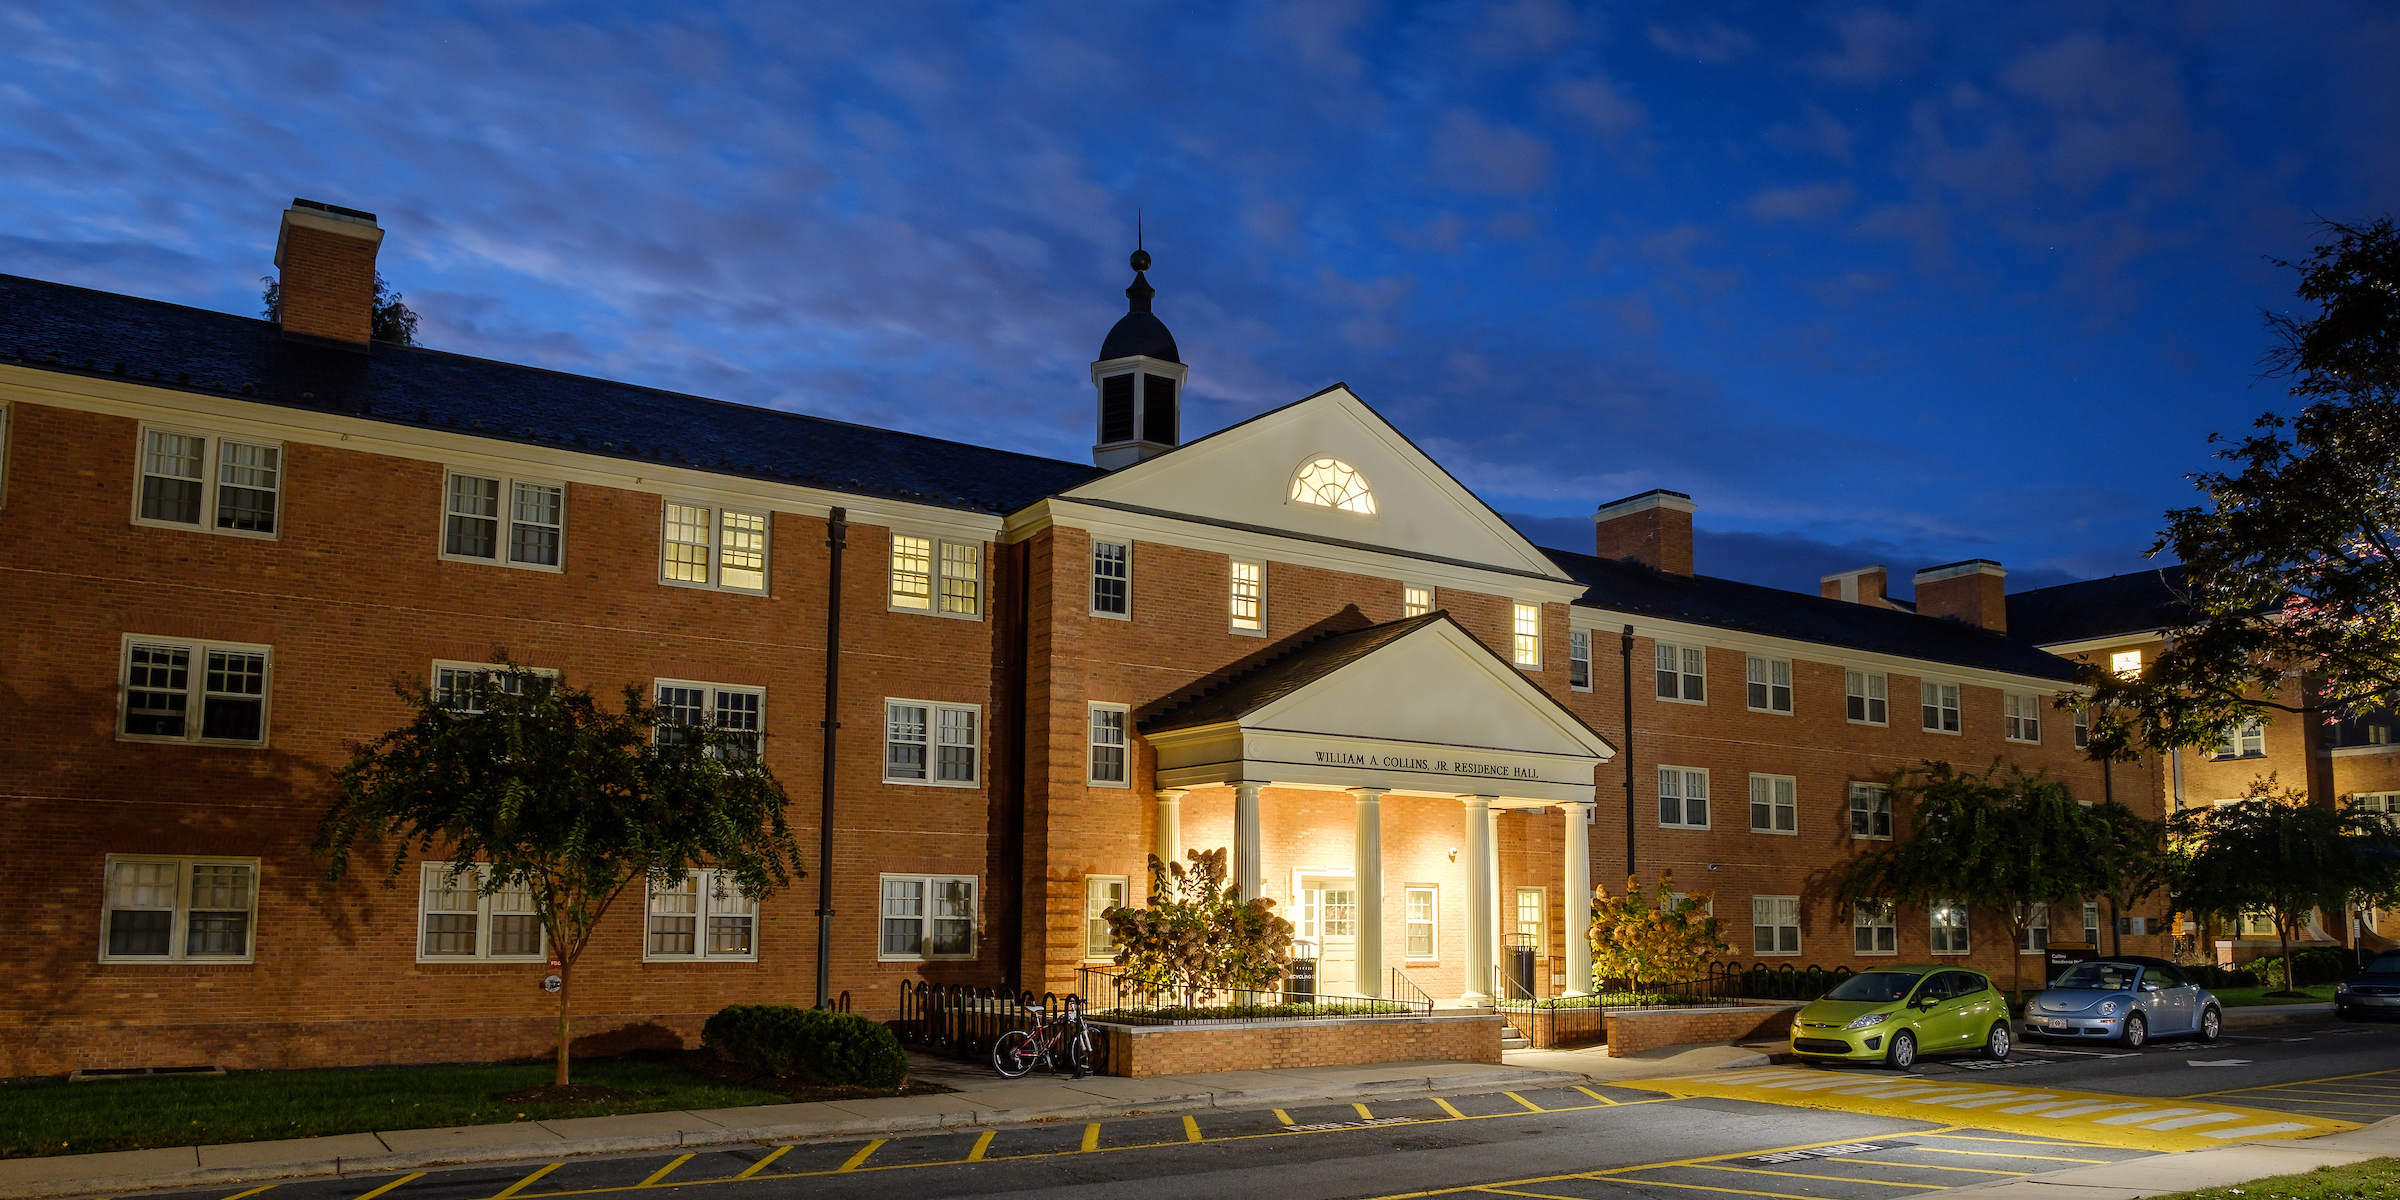 View of Collins residence hall from the street at night